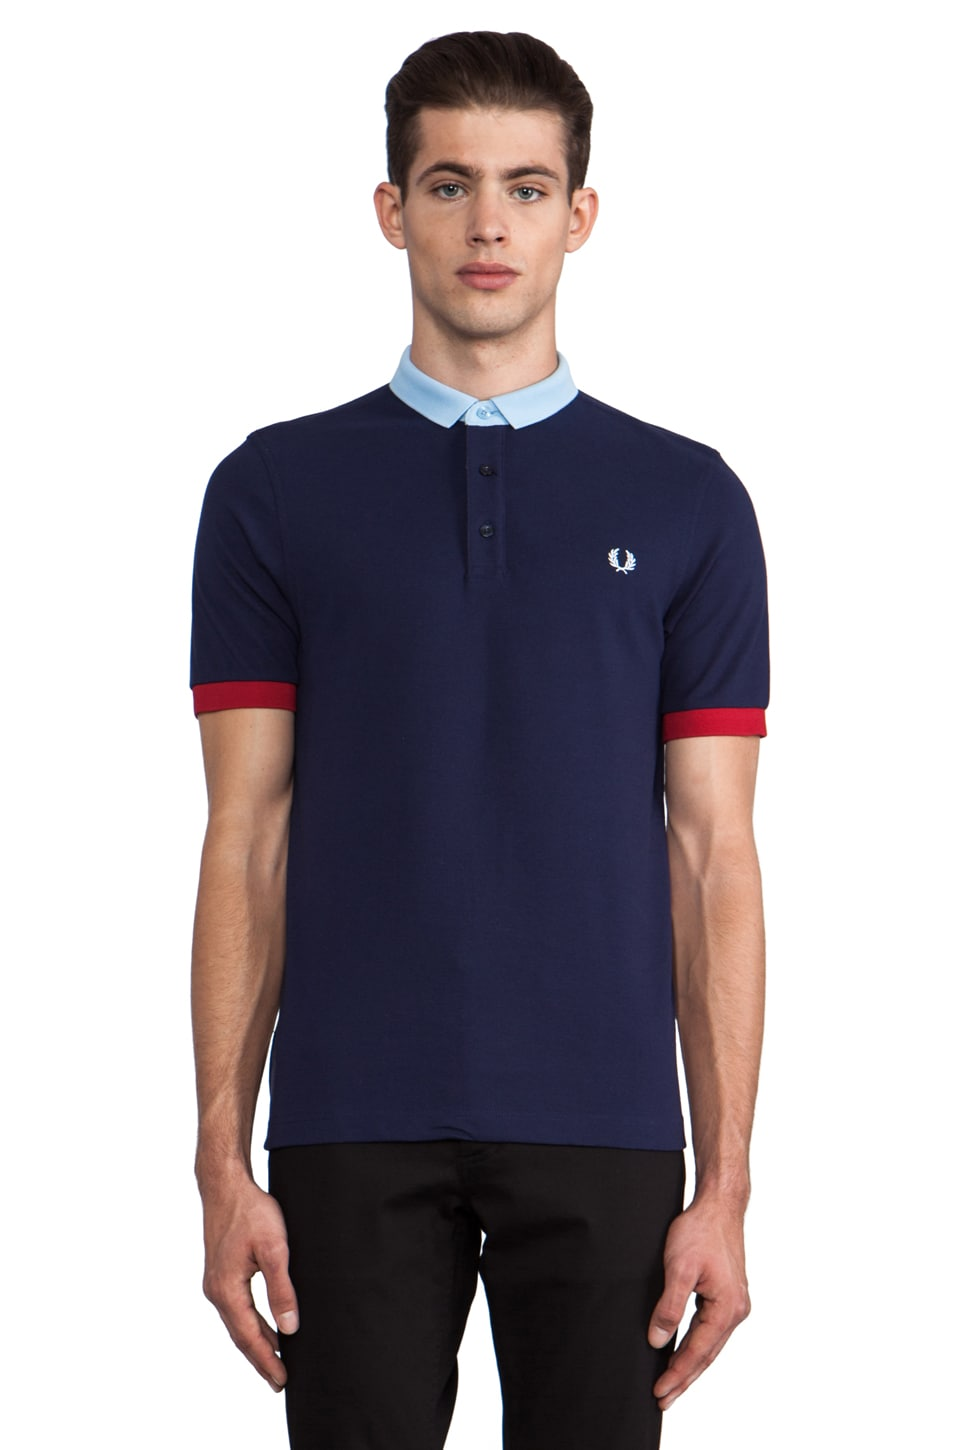 Fred Perry Block Collar Shirt in Carbon Blue/Glacier/Blood